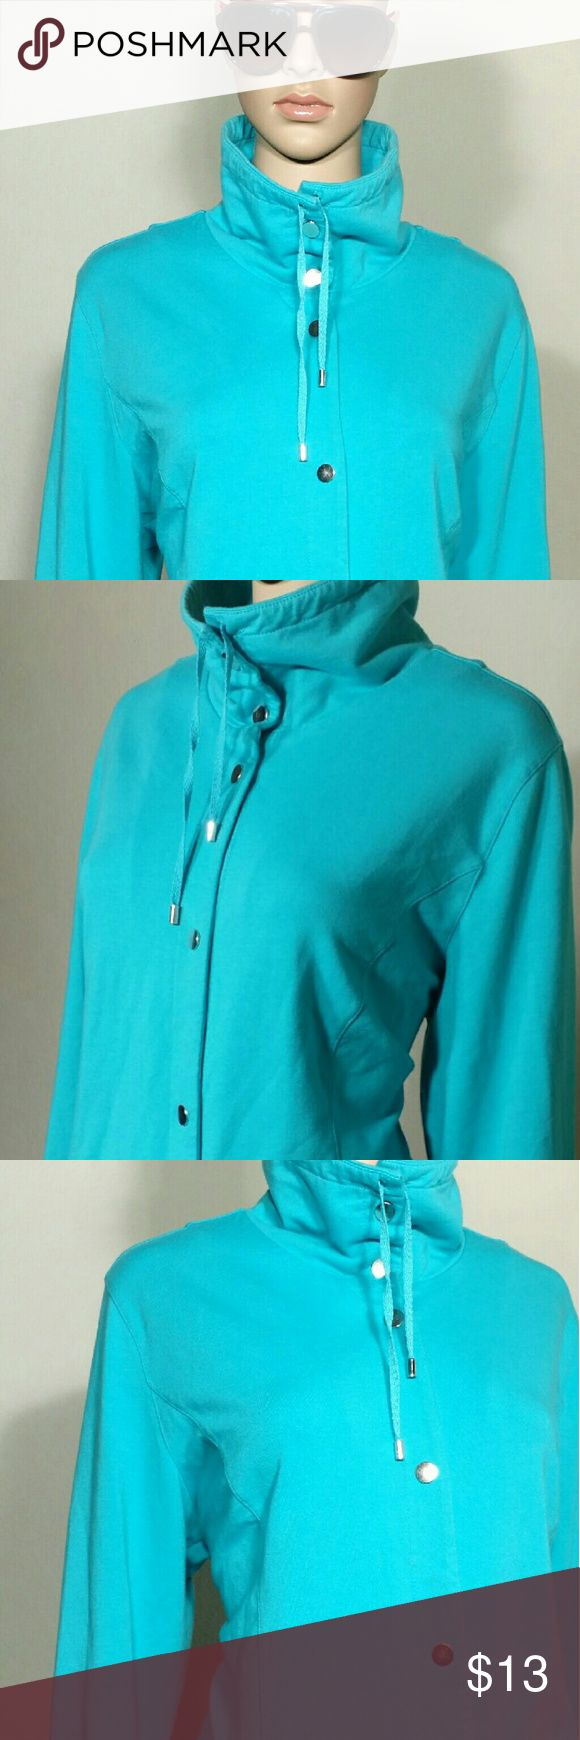 Karen Scott Sports Light Blue Full Snaps Jacket Size XL EXTRA LARGE 97% Cotton 3% Spandex In very good condition!! Very adorable!! A great gift!! Fast shipping!! Karen Scott Jackets & Coats